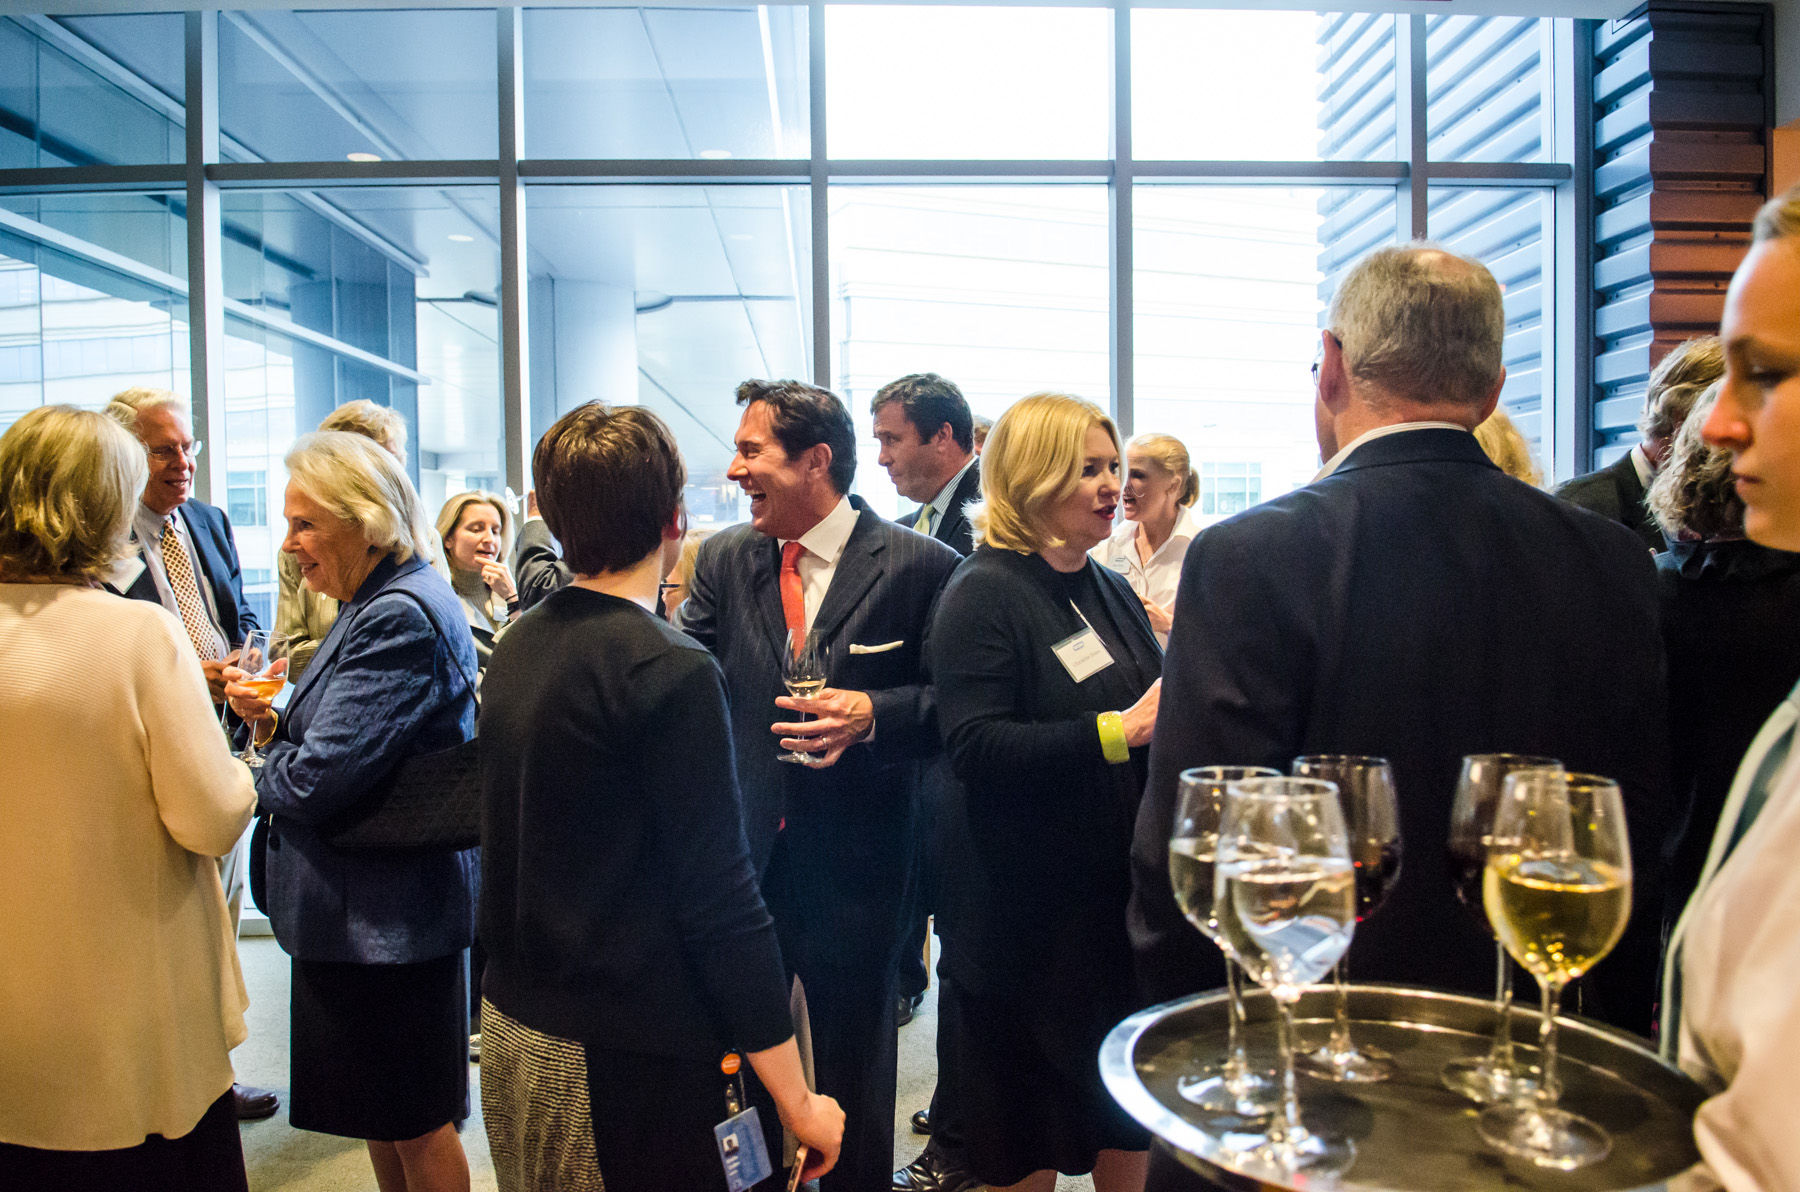 Formal Affairs Can Be Business Affairs: Let Corporate Event Planning Professionals Help